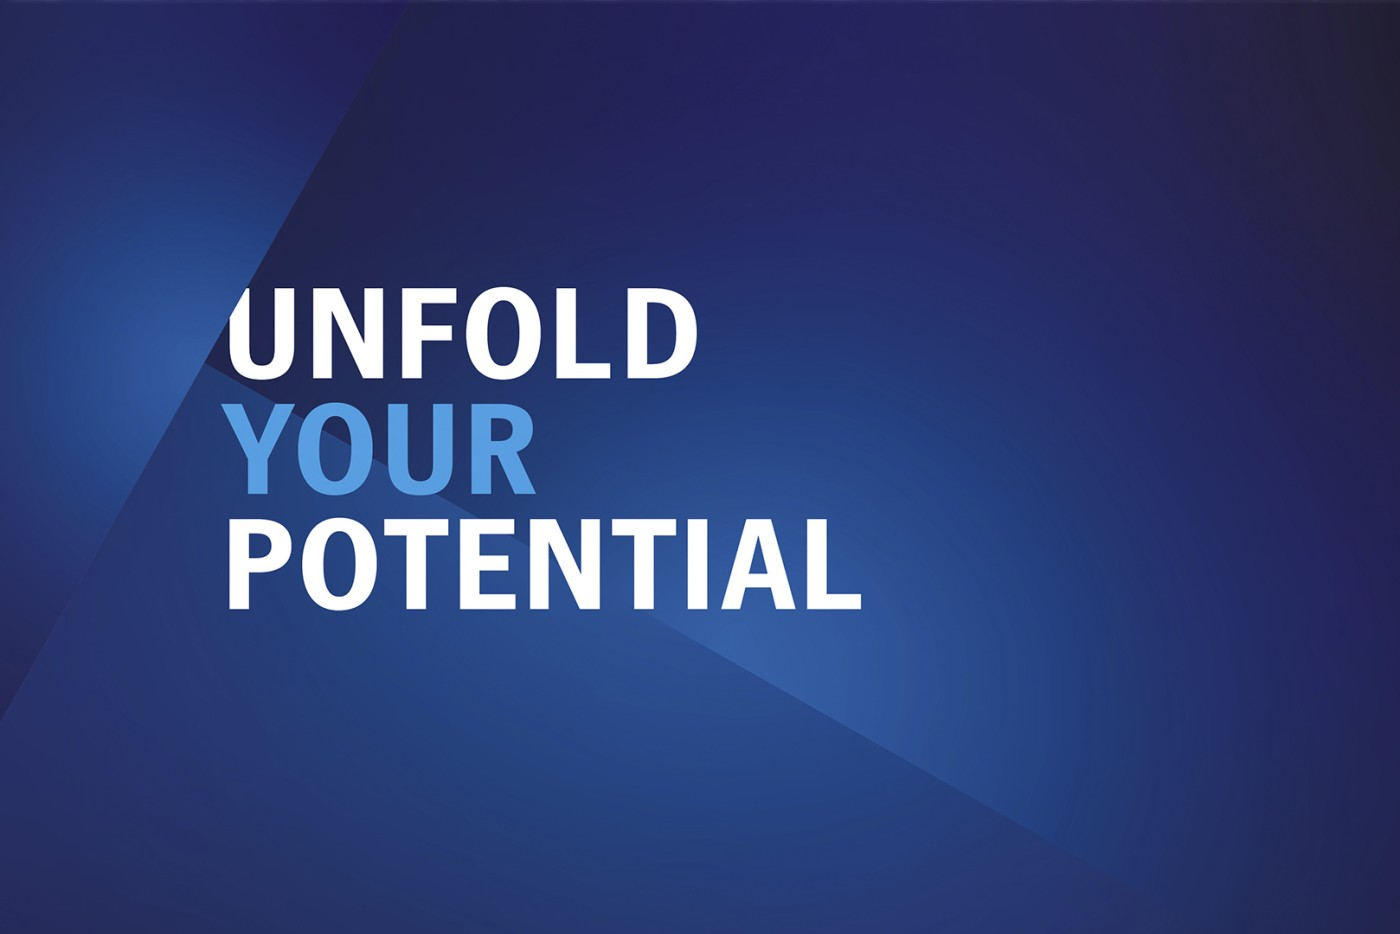 unfold-your-potential-web